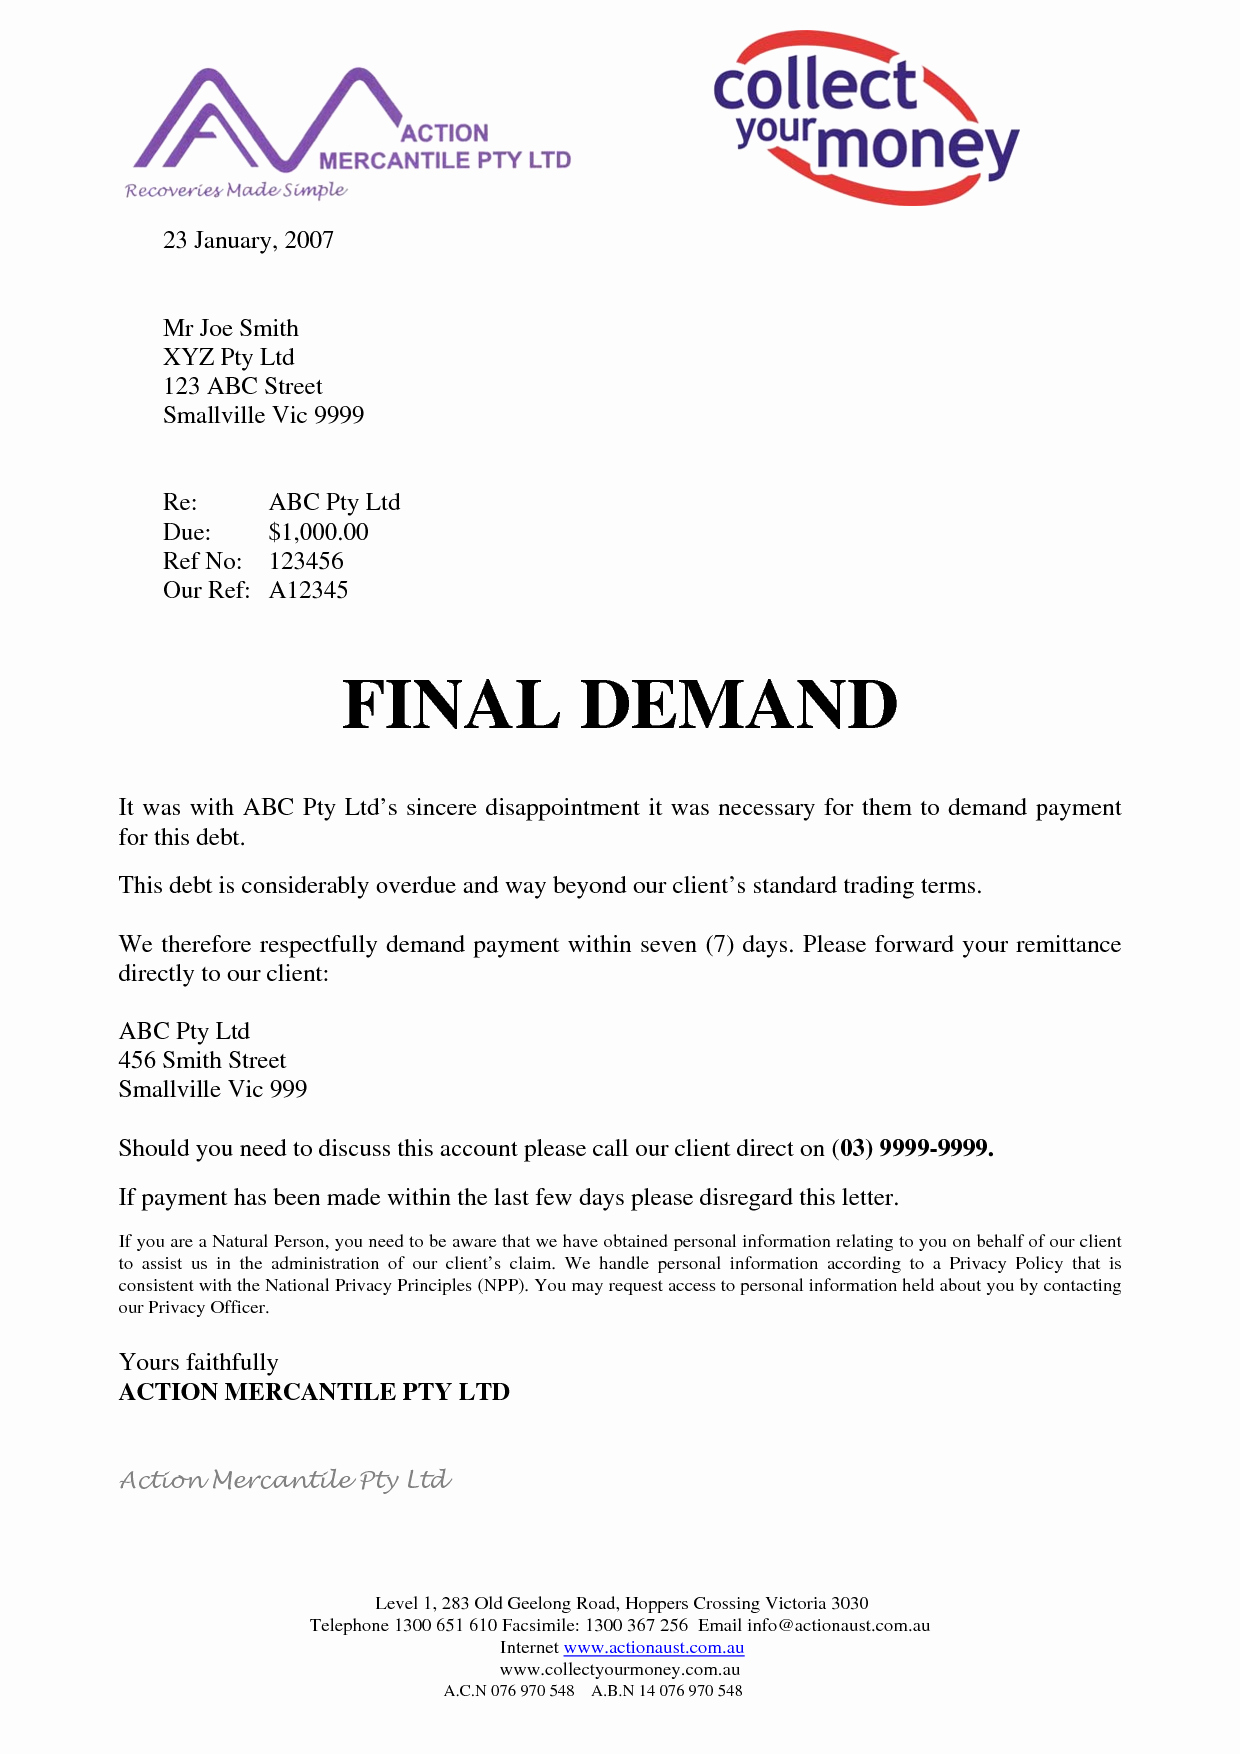 Sample Demand for Payment Letter Awesome Best S Of Final Demand Letter Final Demand Letter